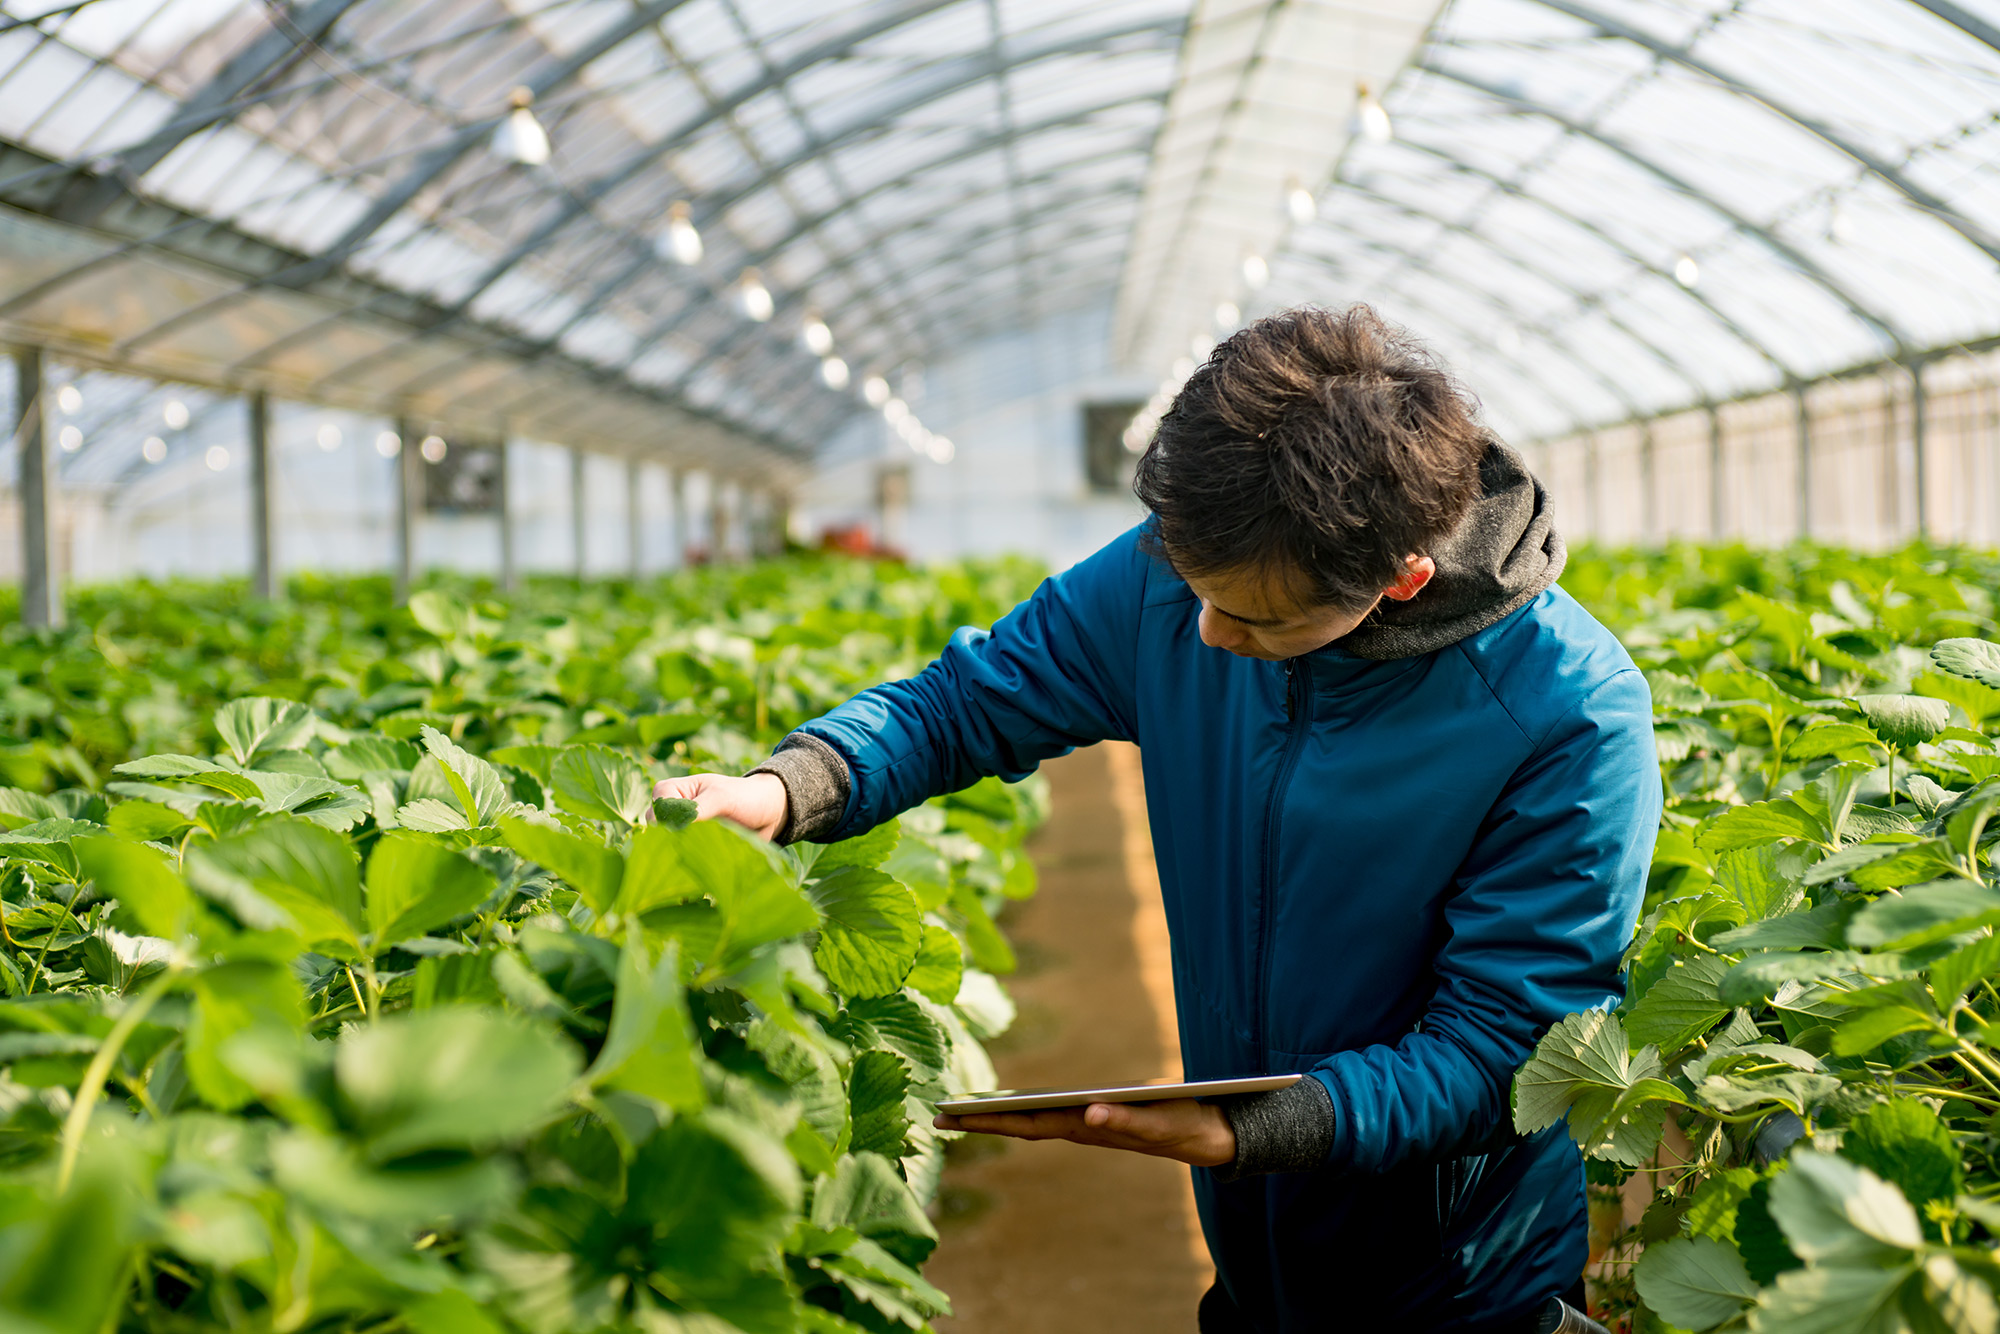 Greenhouse workers needed